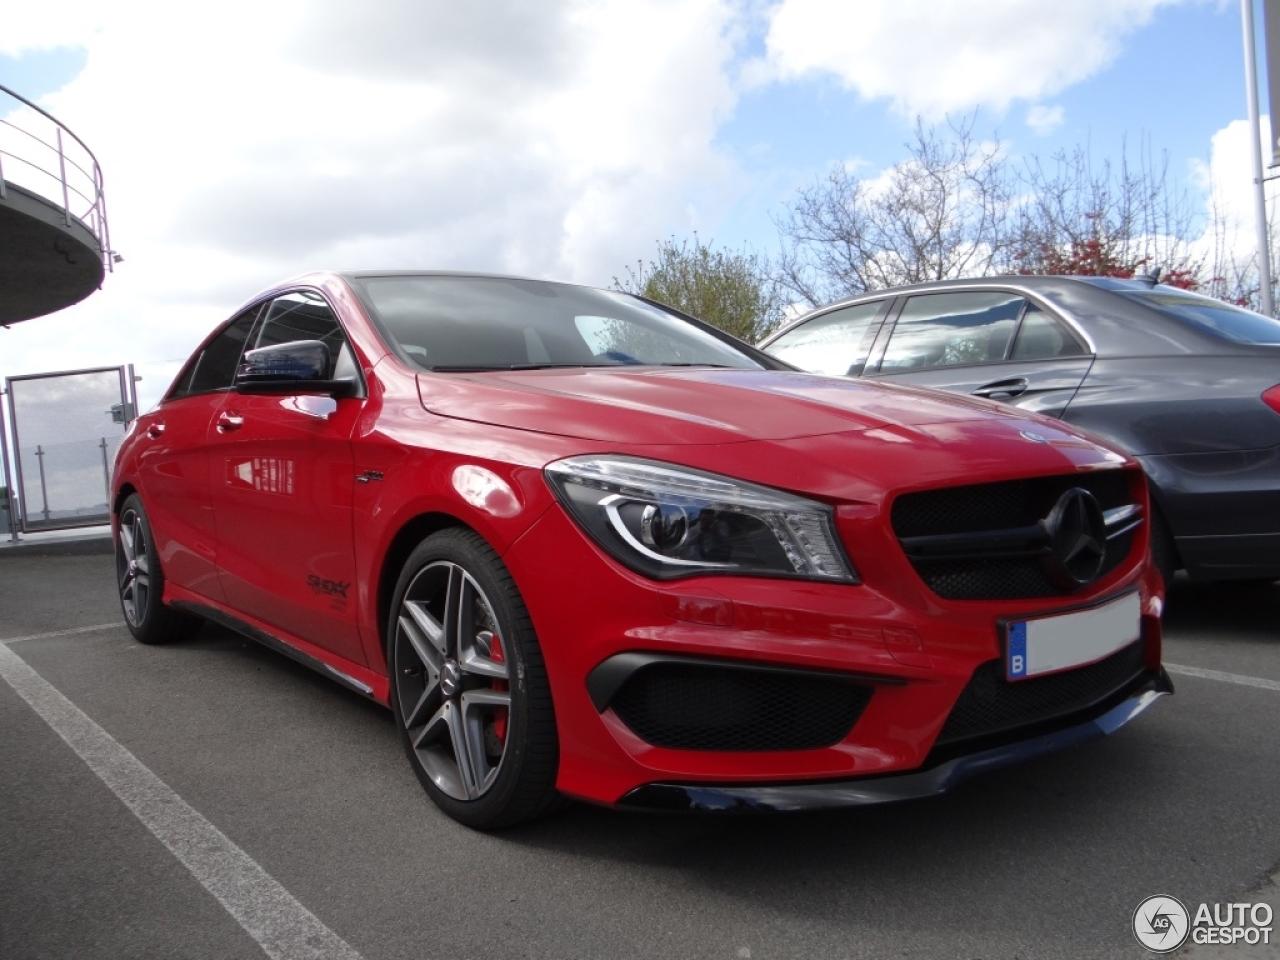 Mercedes benz cla 45 amg c117 24 march 2014 autogespot for 2014 mercedes benz cla 45